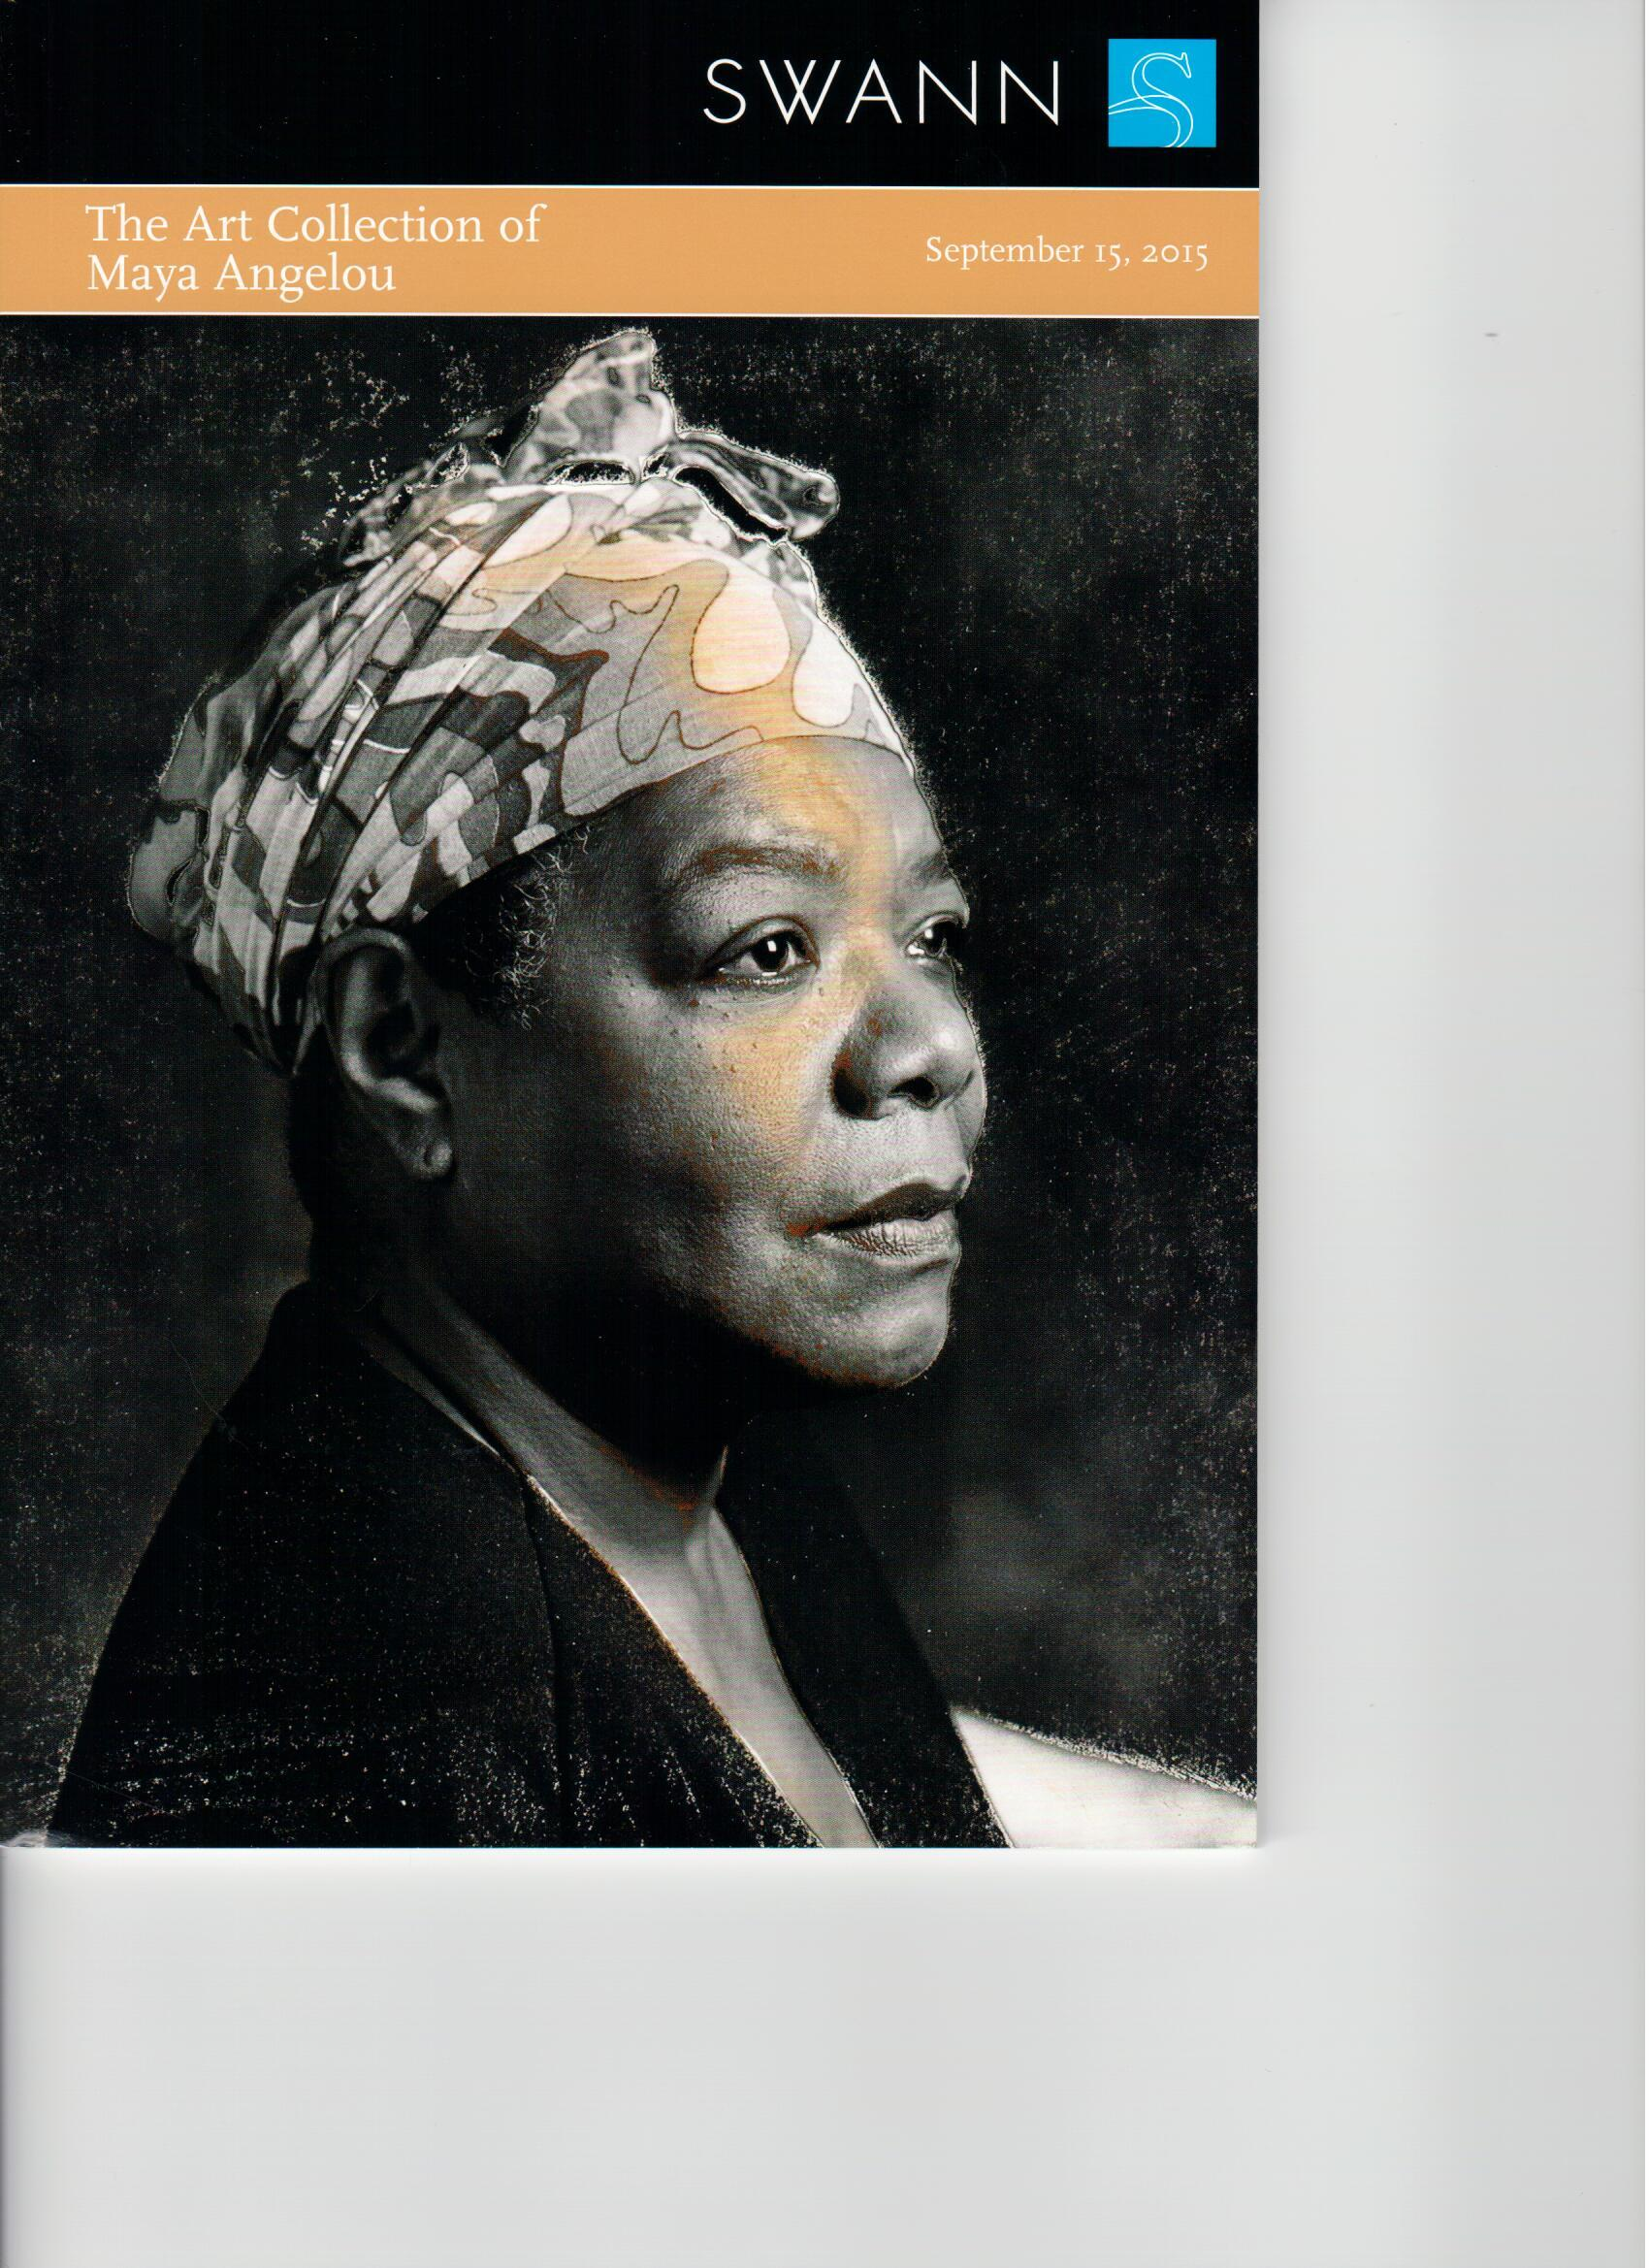 Maya Angelou's Art Collection Swann Auction Sept 15